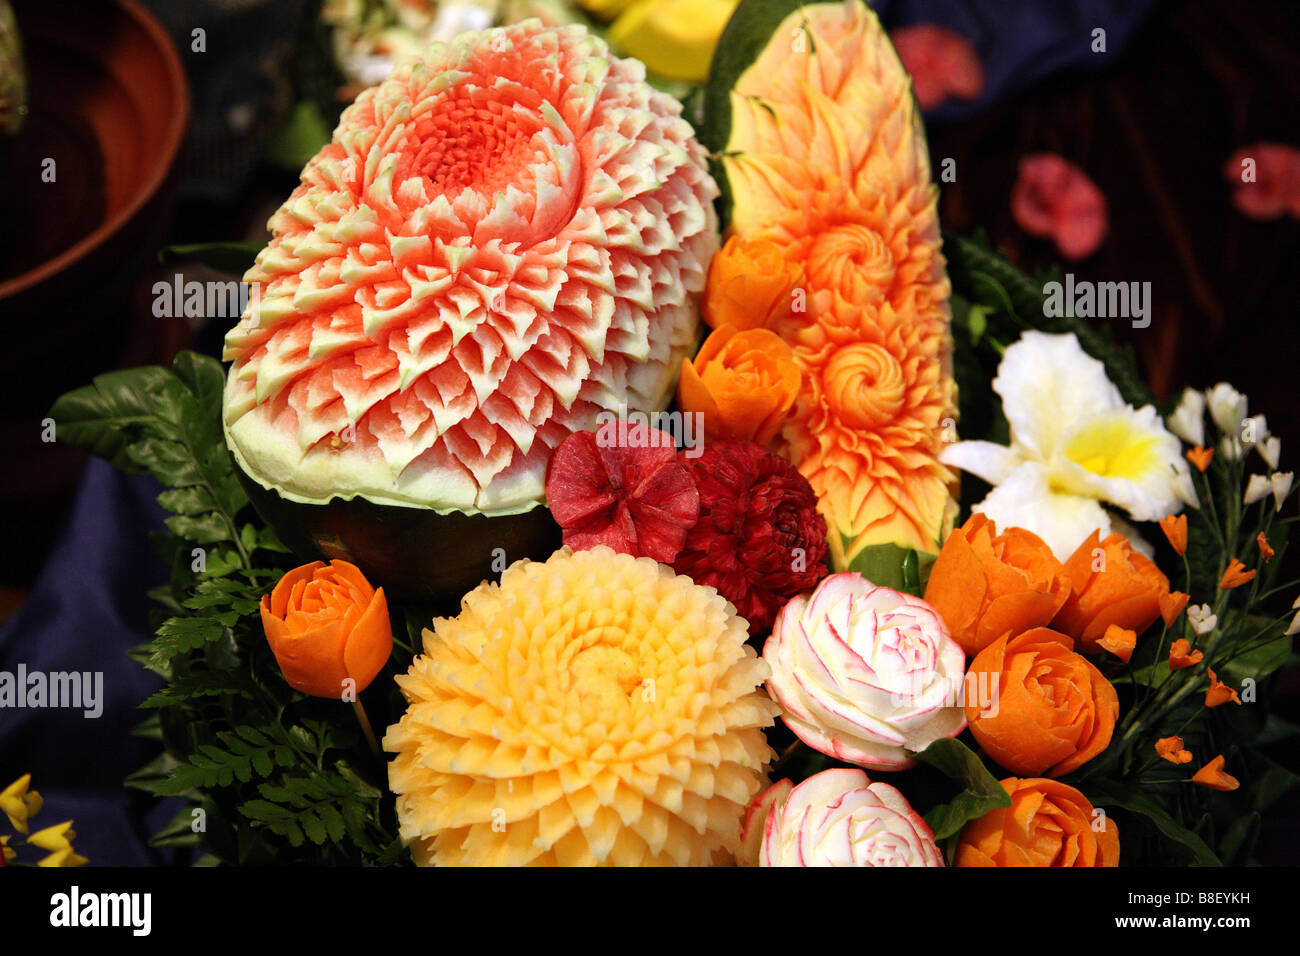 Fruit vegetable carving display containers baskets trays